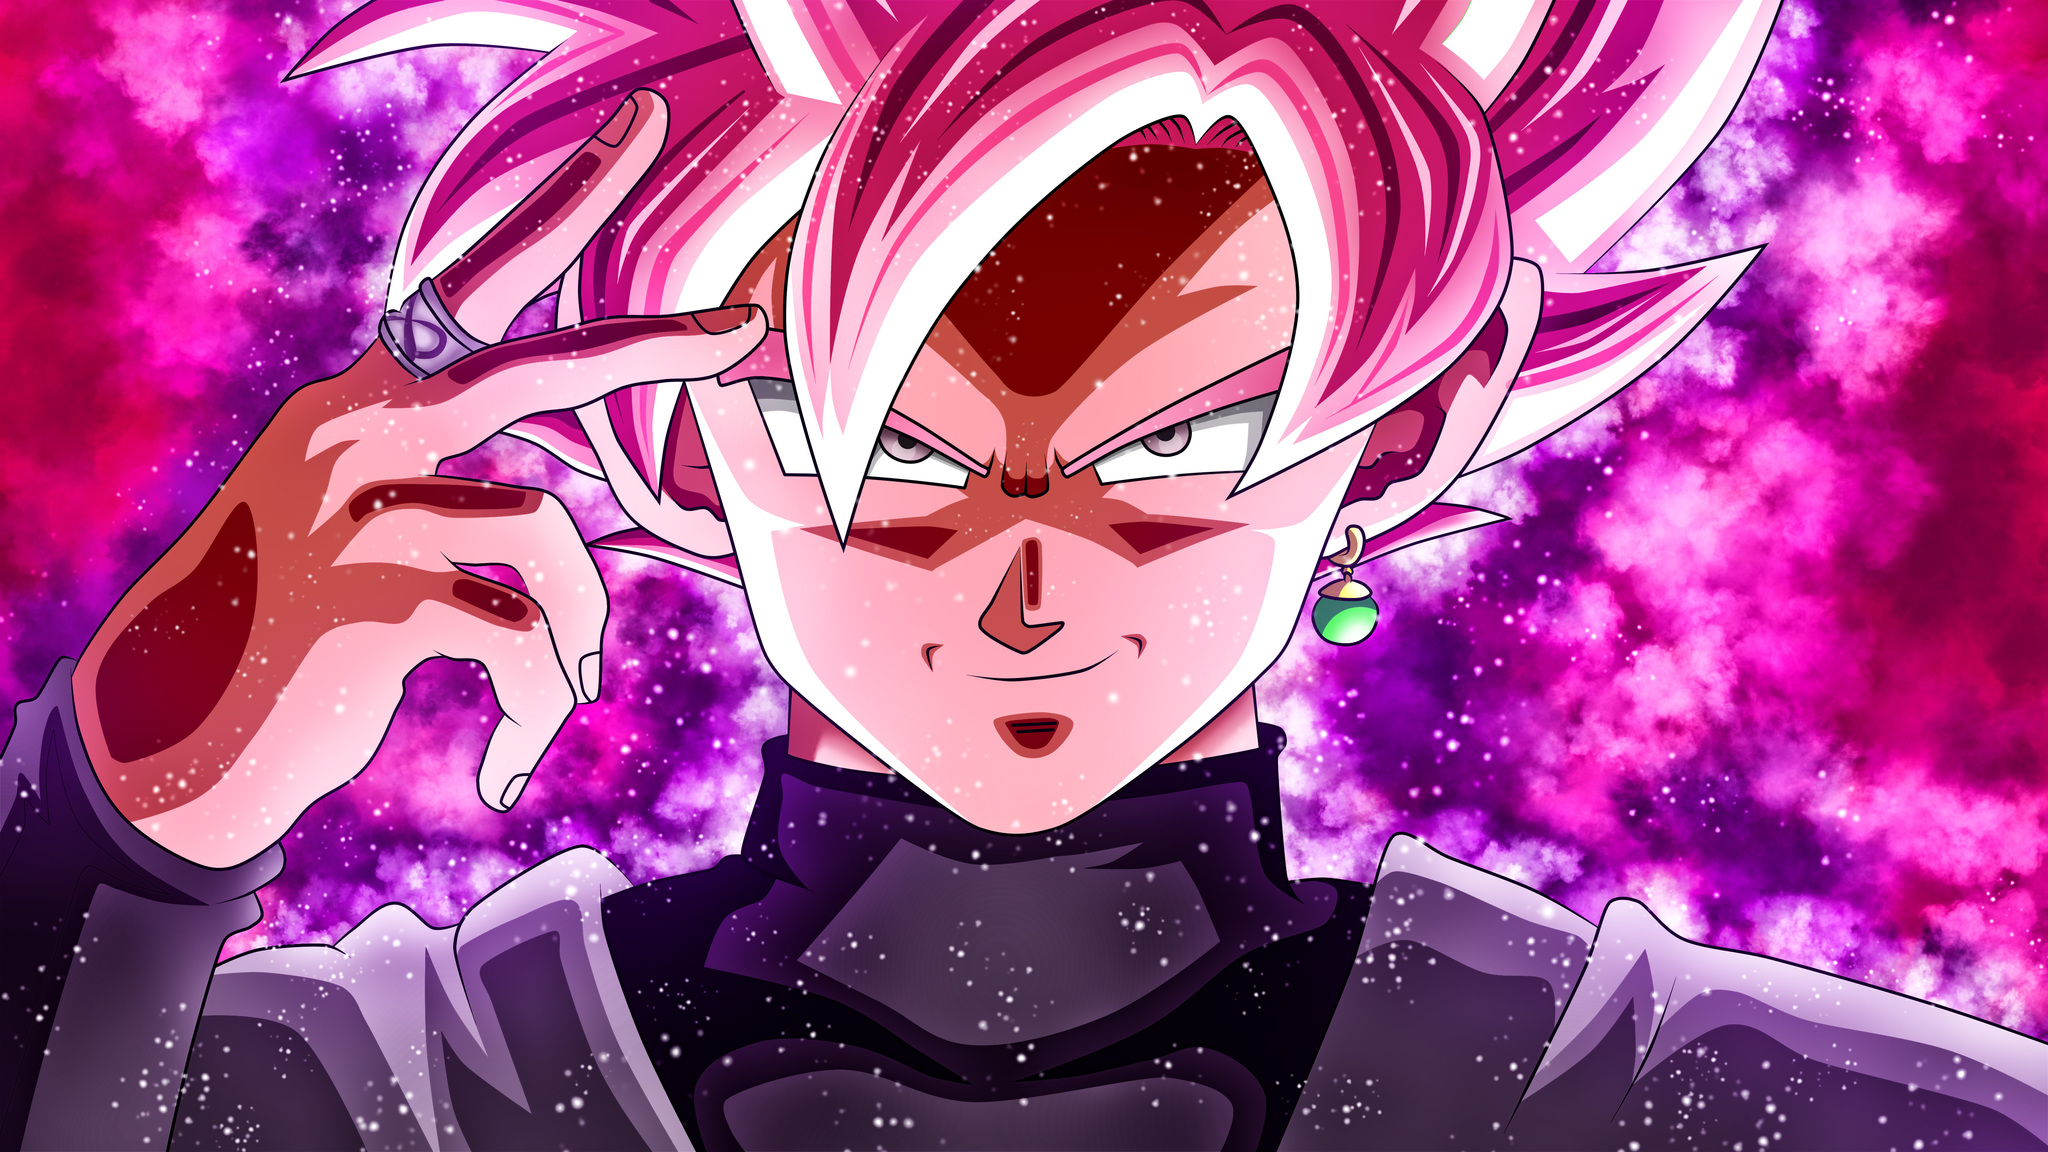 2048x1152 black goku dragon ball super 2048x1152 resolution hd 4k